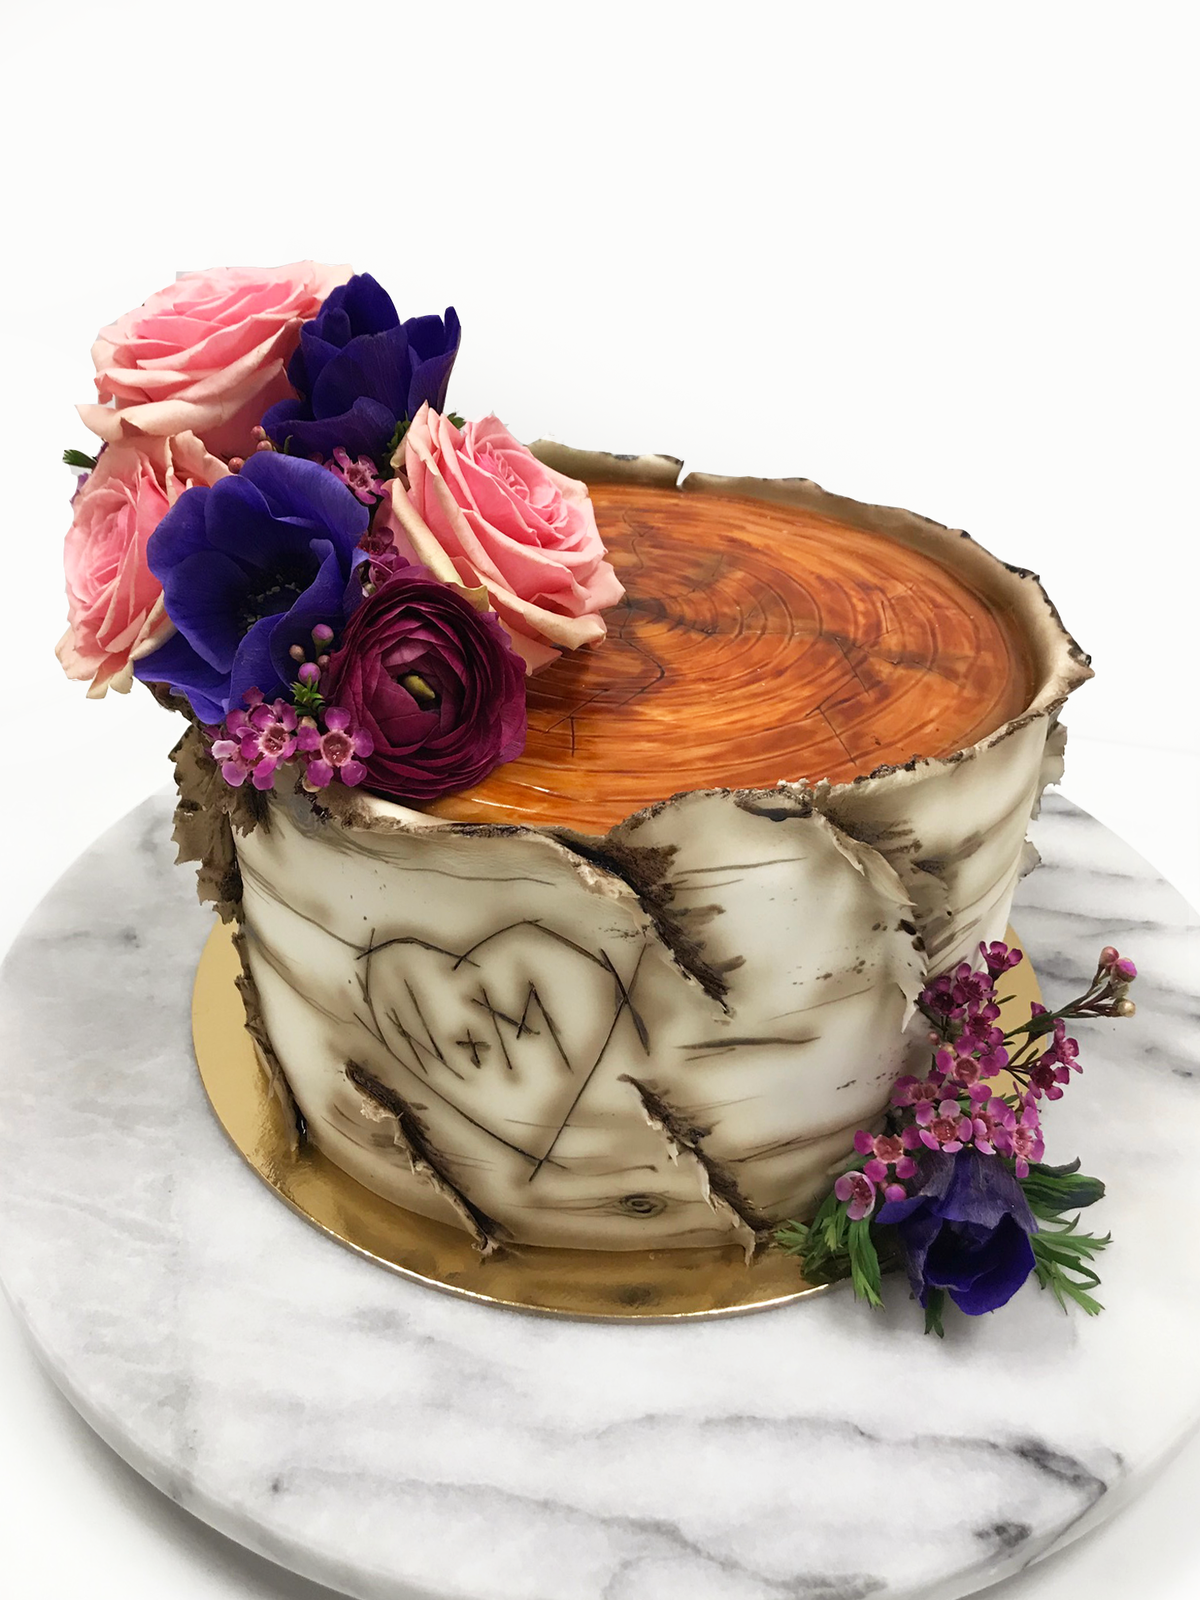 Whippt Desserts - Wood Bark design Feb 2019